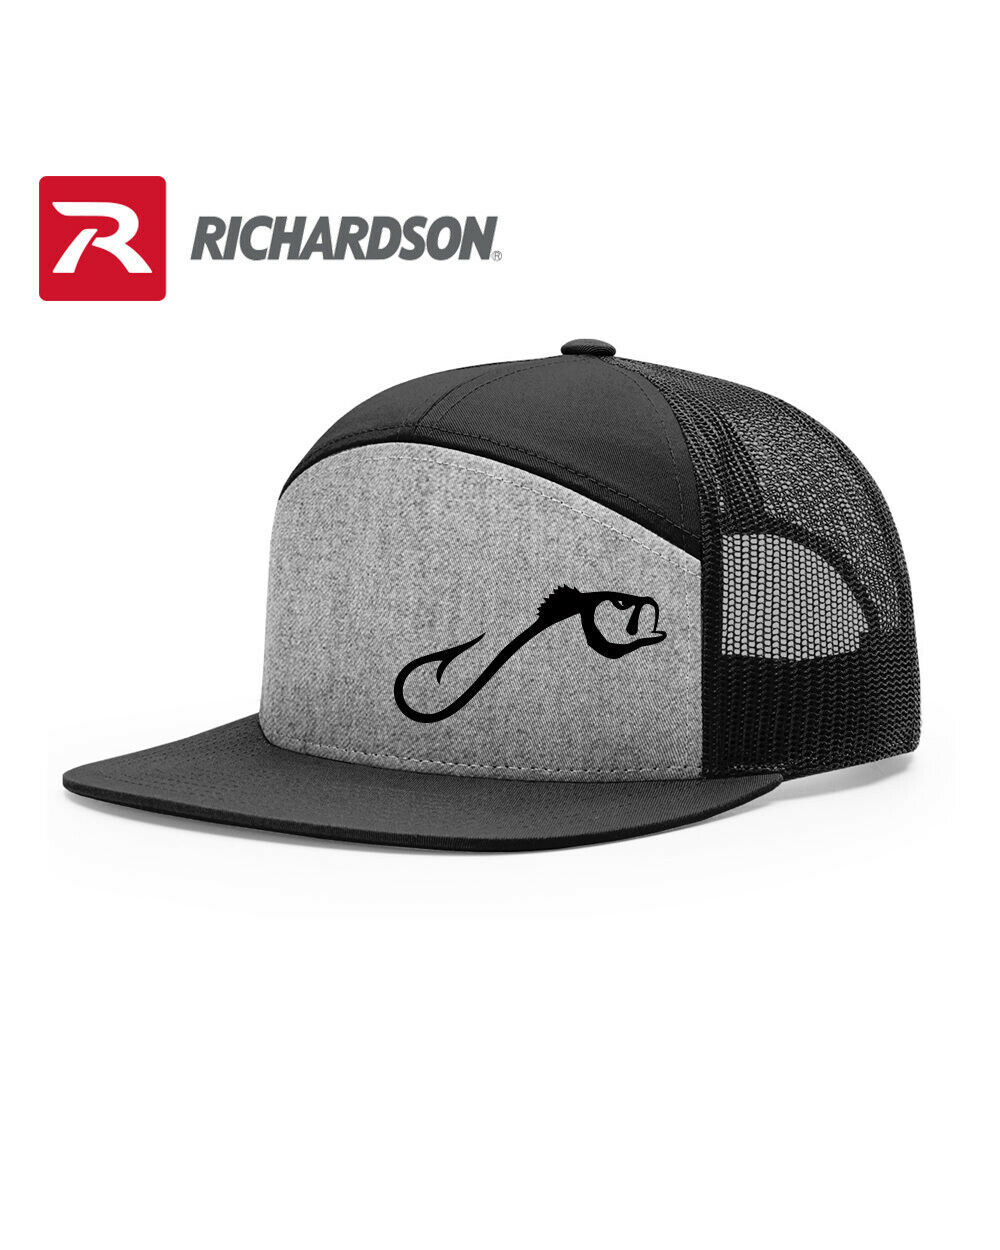 Primary image for FISH FISHERMAN HOOK RICHARDSON FLAT BILL SNAPBACK HAT * FREE SHIPPING in BOX*